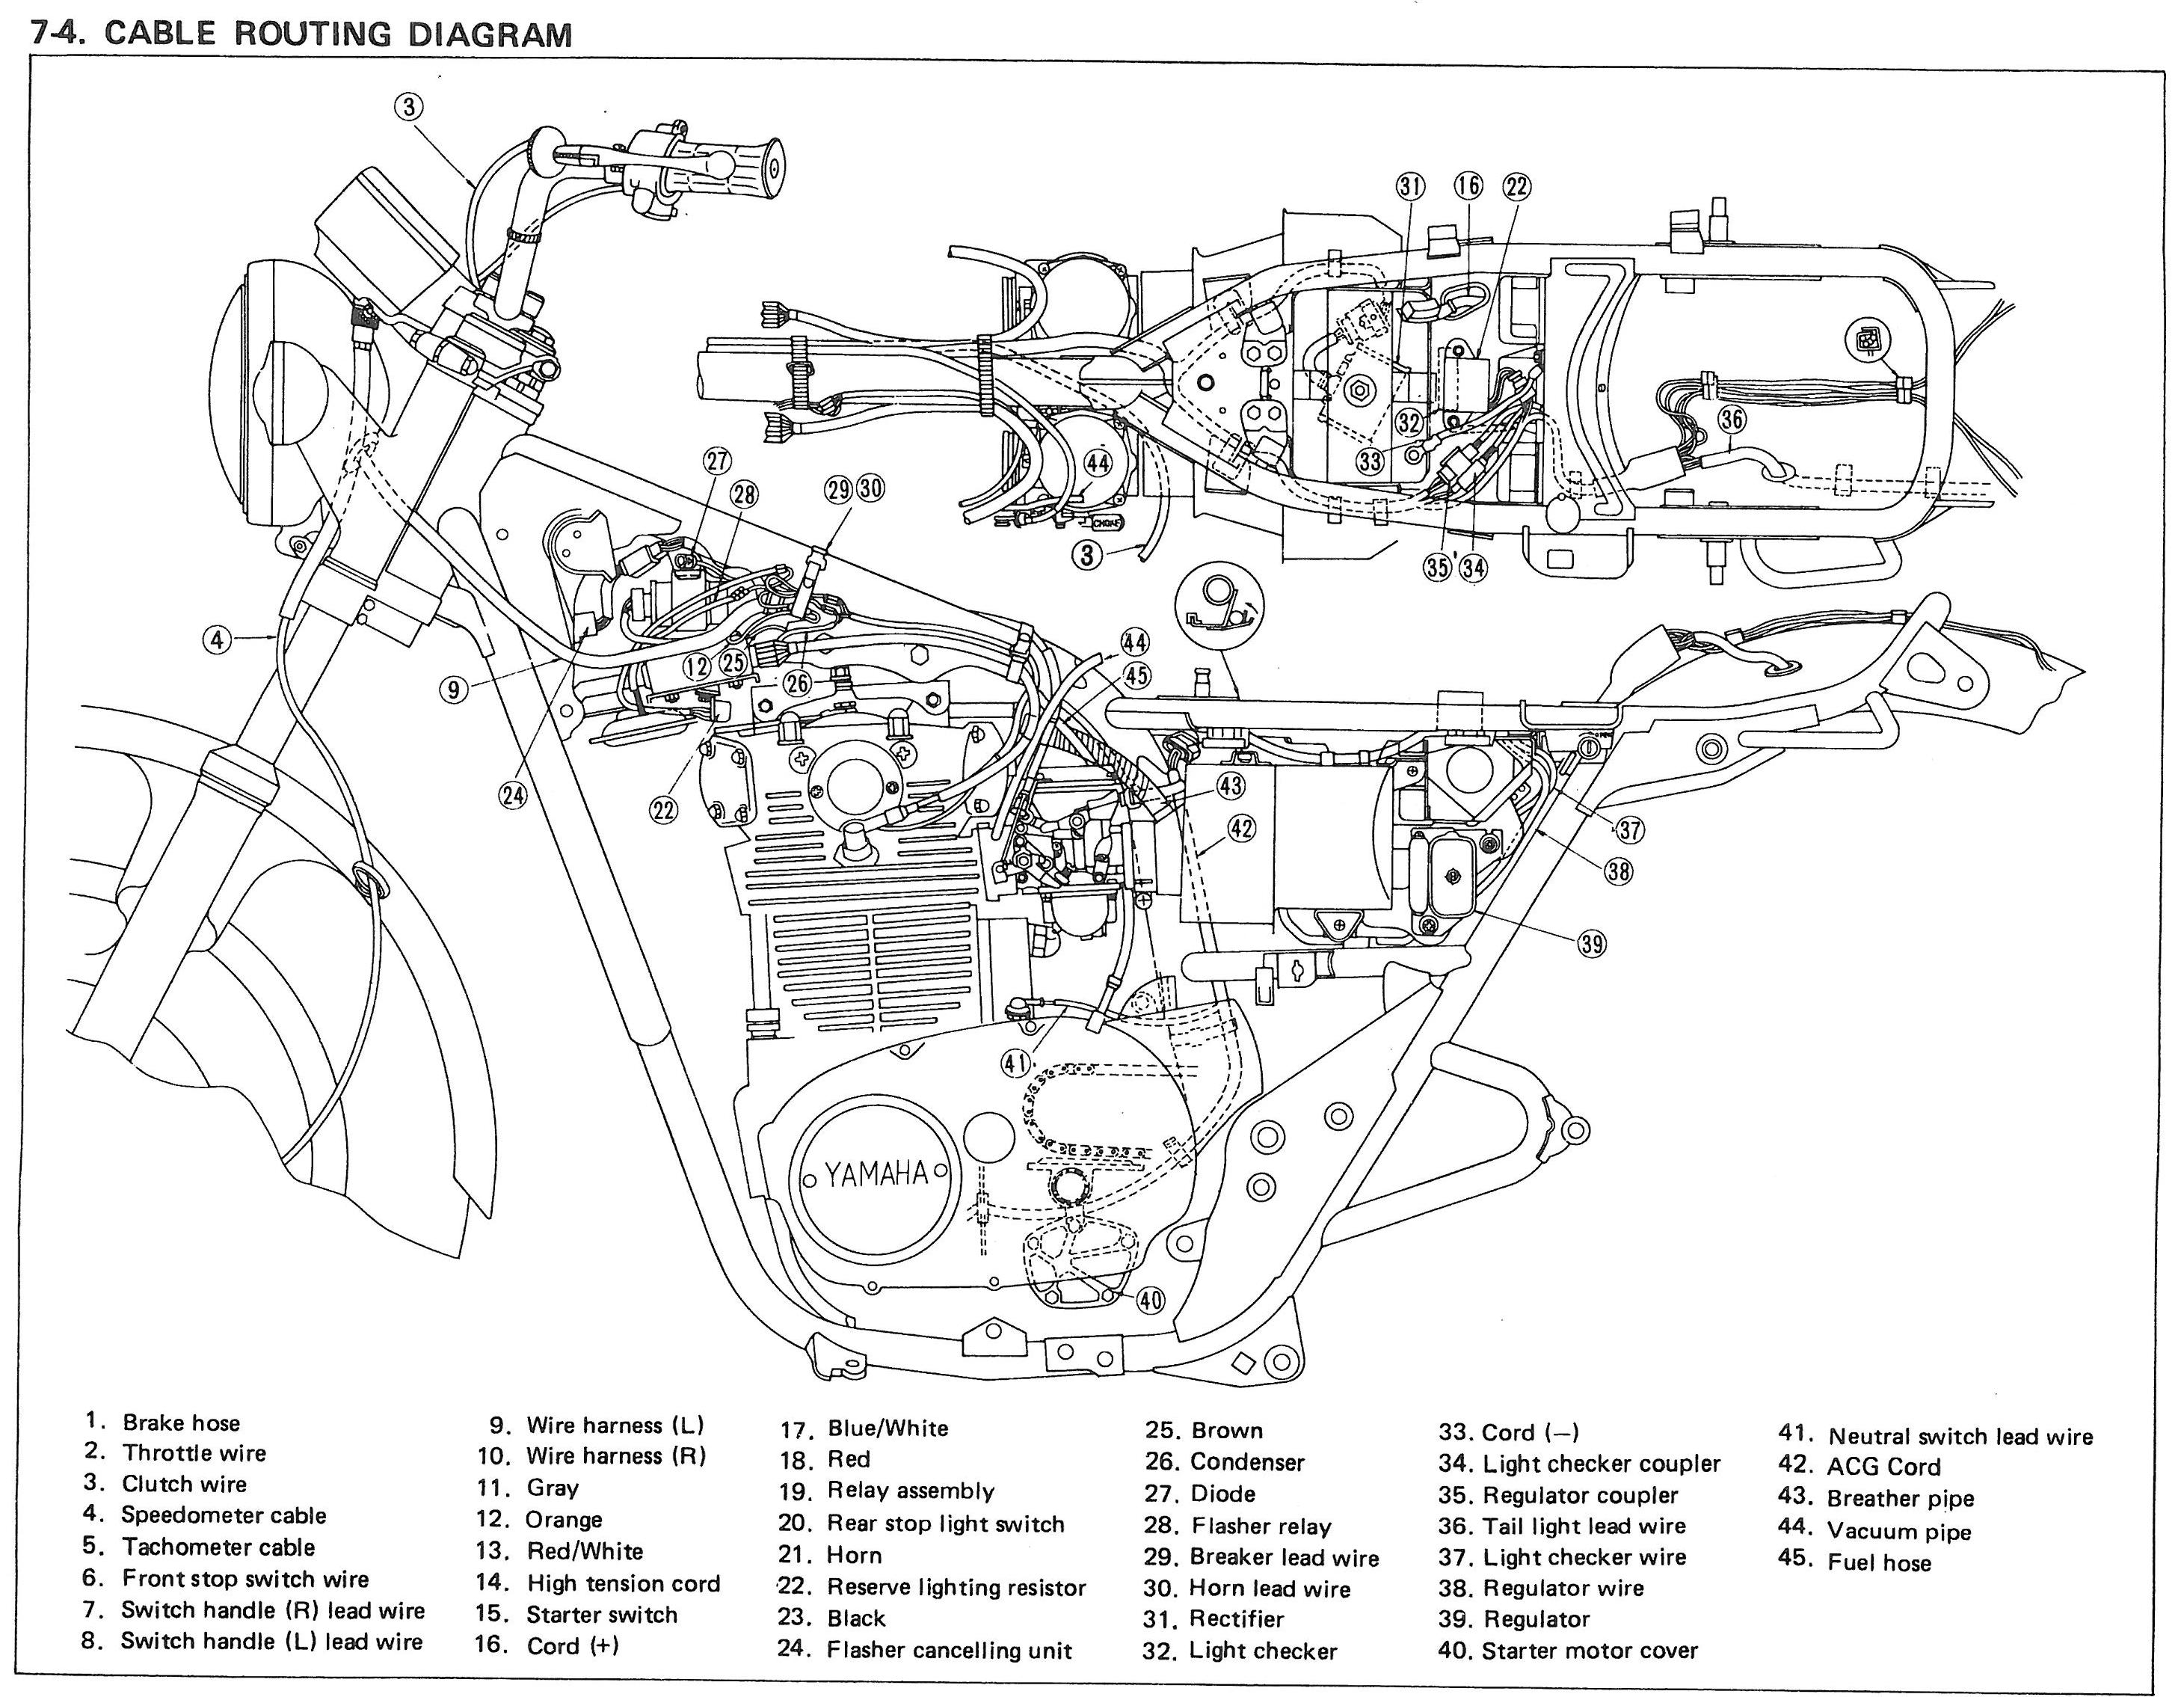 xs650 wiring harness routing auto electrical wiring diagram \u2022 wiring diagram honda ss50 xs650 wiring harness routing example electrical wiring diagram u2022 rh cranejapan co xs650 wiring capacitor 81 xs650 simplified wiring problems